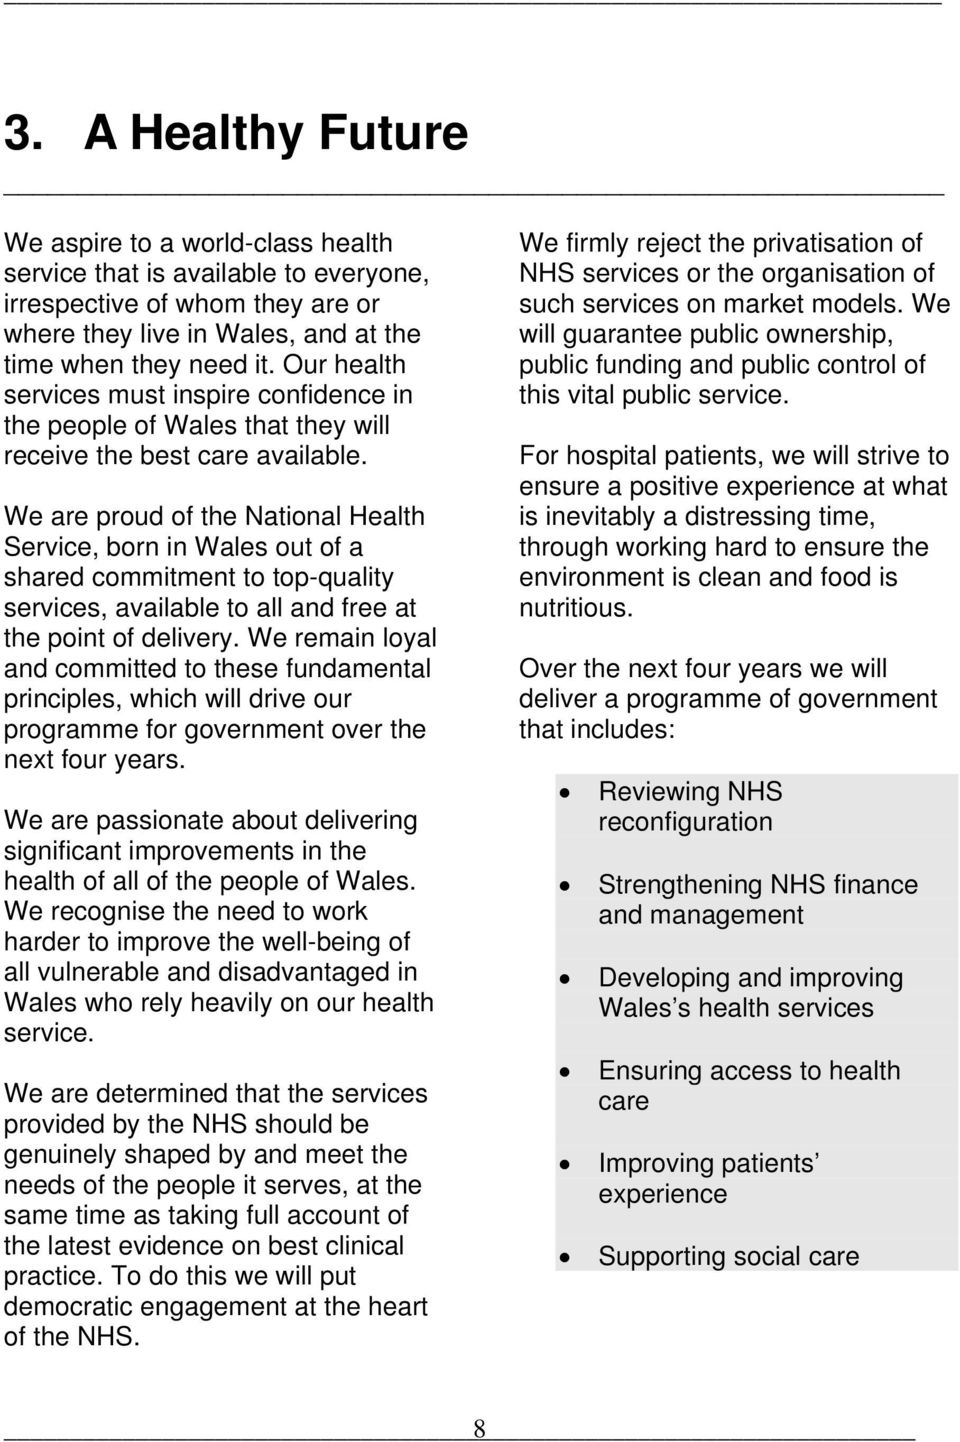 We are proud of the National Health Service, born in Wales out of a shared commitment to top-quality services, available to all and free at the point of delivery.